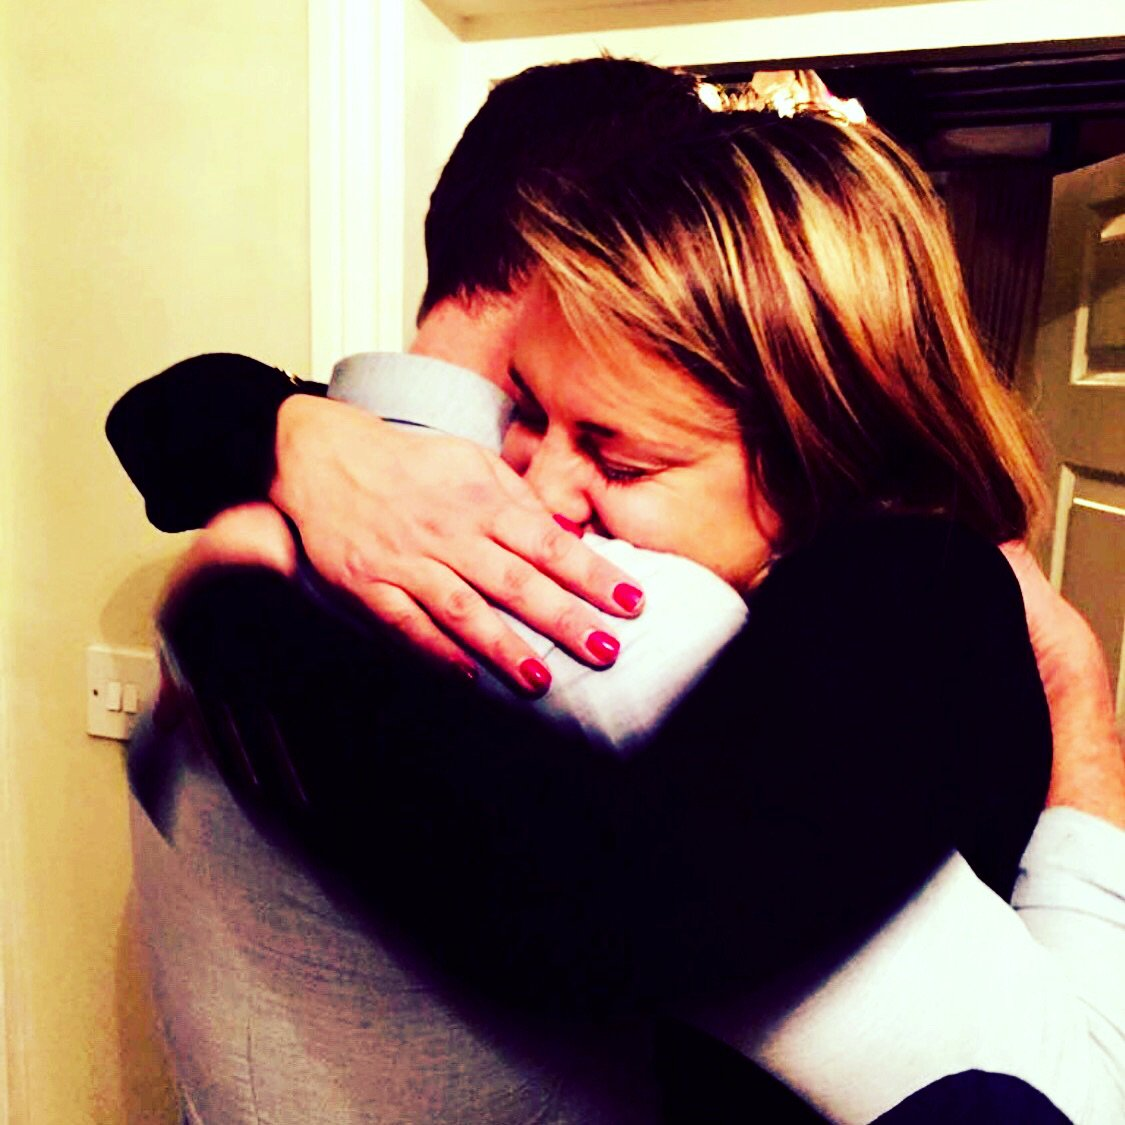 If you're blessed enough in life to have someone to love or be loved give them a hug today. Nothing lasts forever.